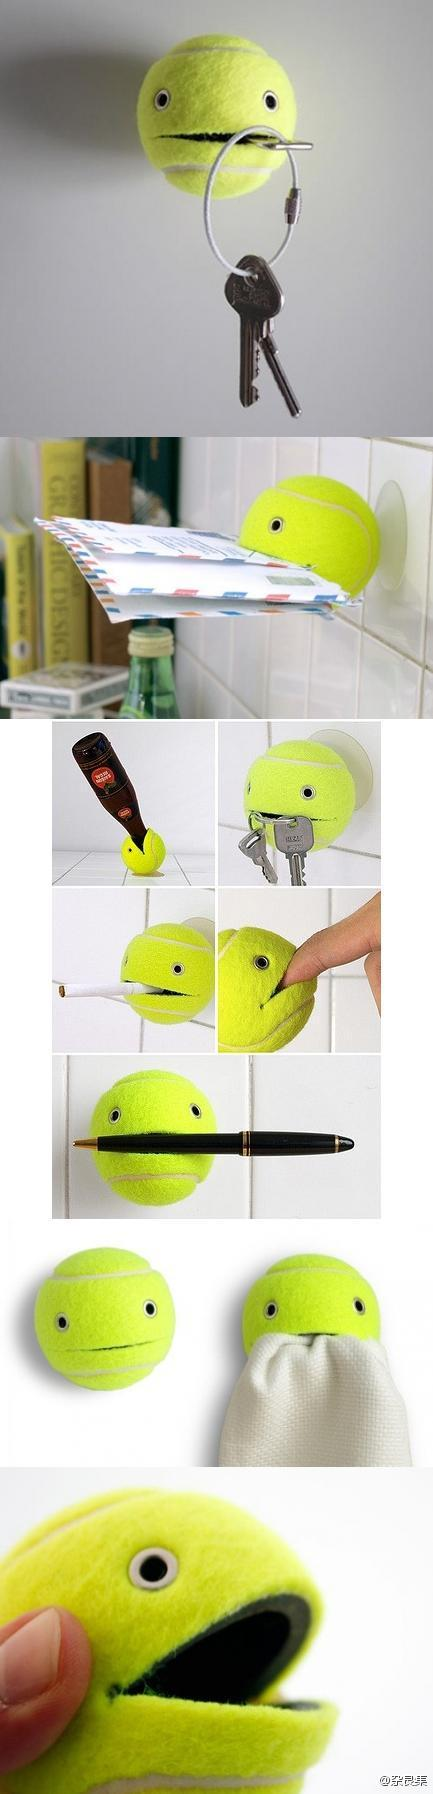 (via Tennis ball helper)